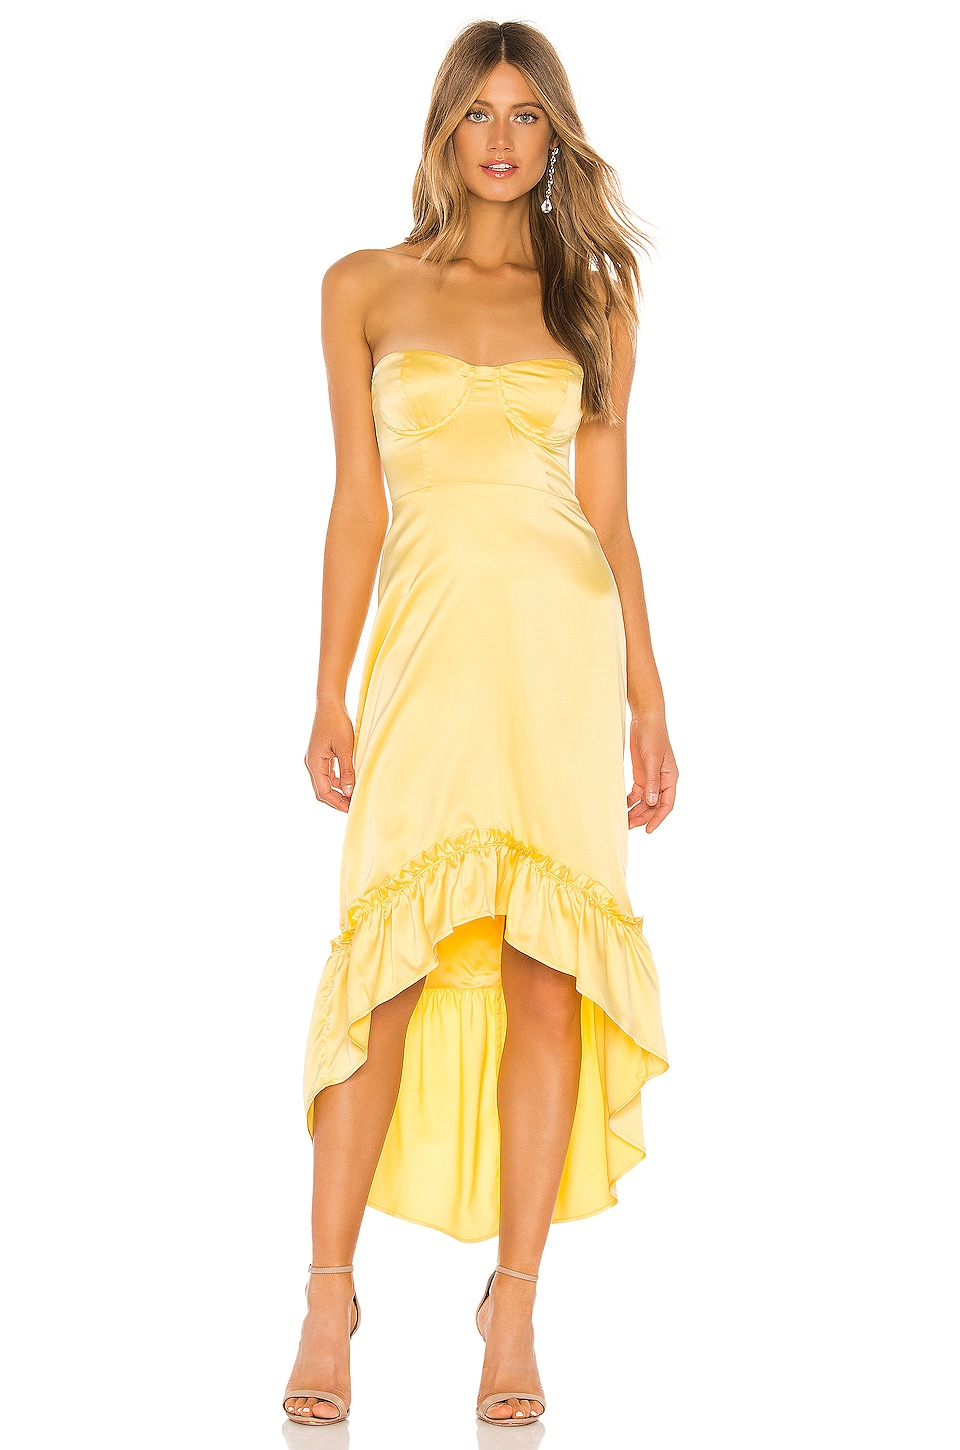 MAJORELLE Tangier Midi Dress in Butter Yellow